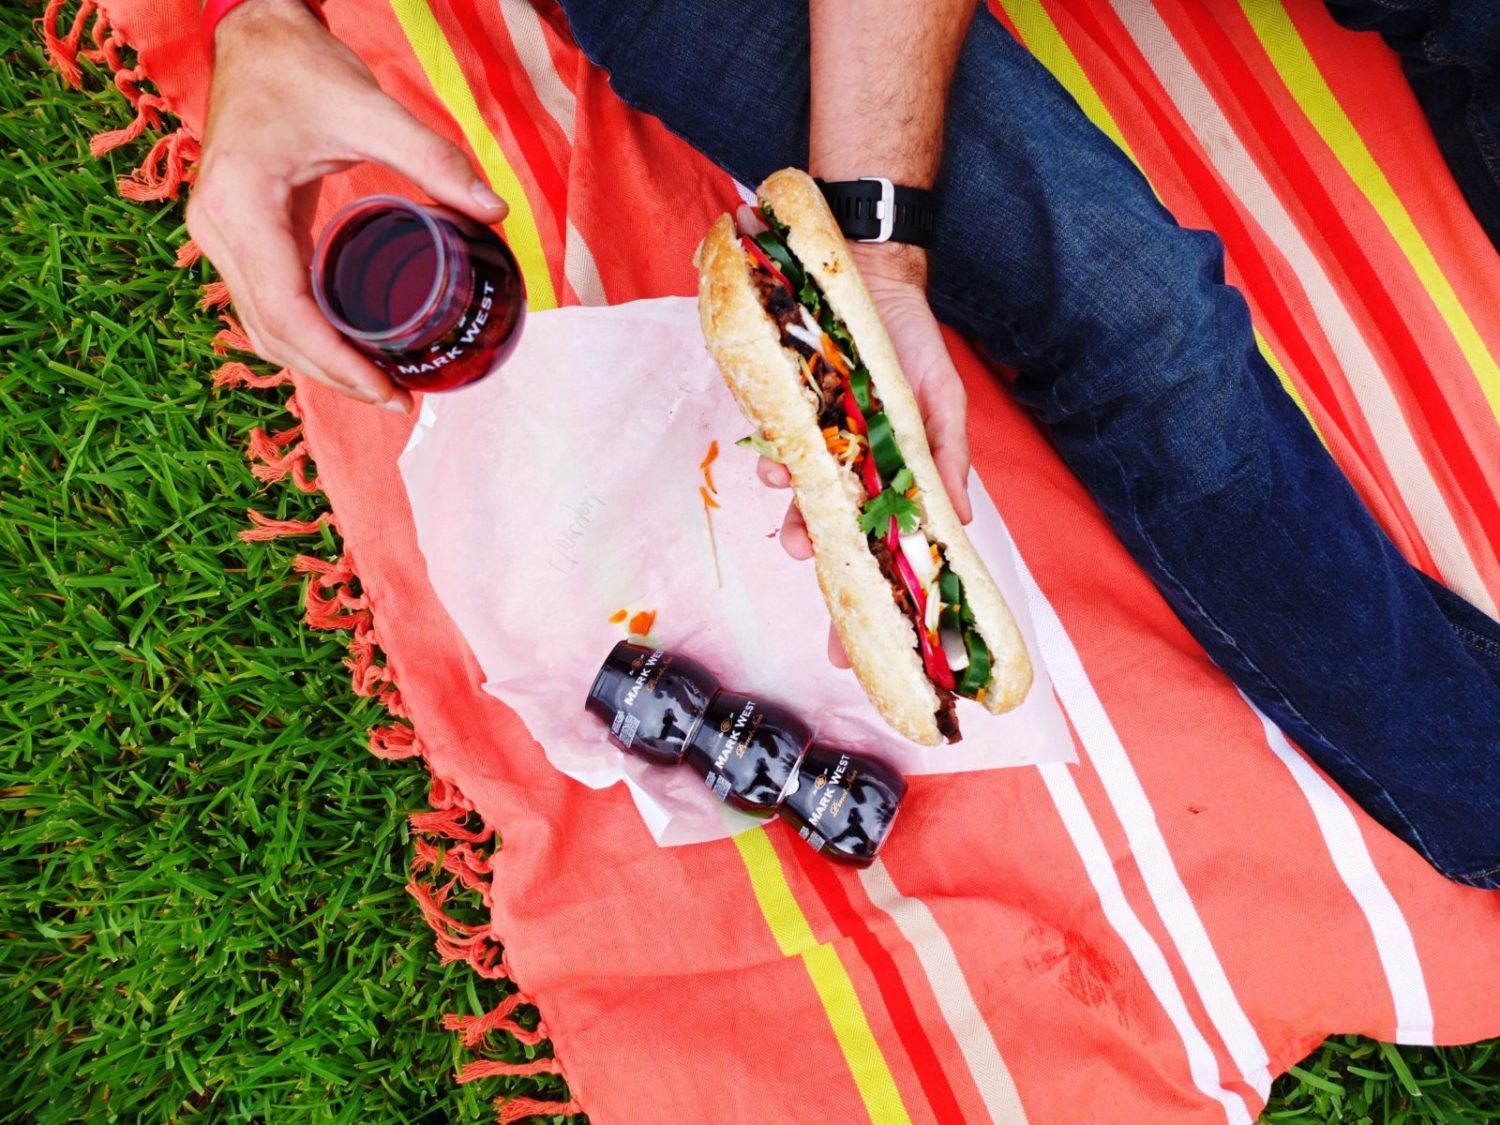 Msg 4 21+. Looking for an easy summer to-go date night recipe? This Garlic Steak Banh Mi is the perfect picnic recipe that is elegant yet easy to eat on the go. Paired with Mark West Pinot Noir single served glasses. #AD #ShareWine // www.ElleTalk.com